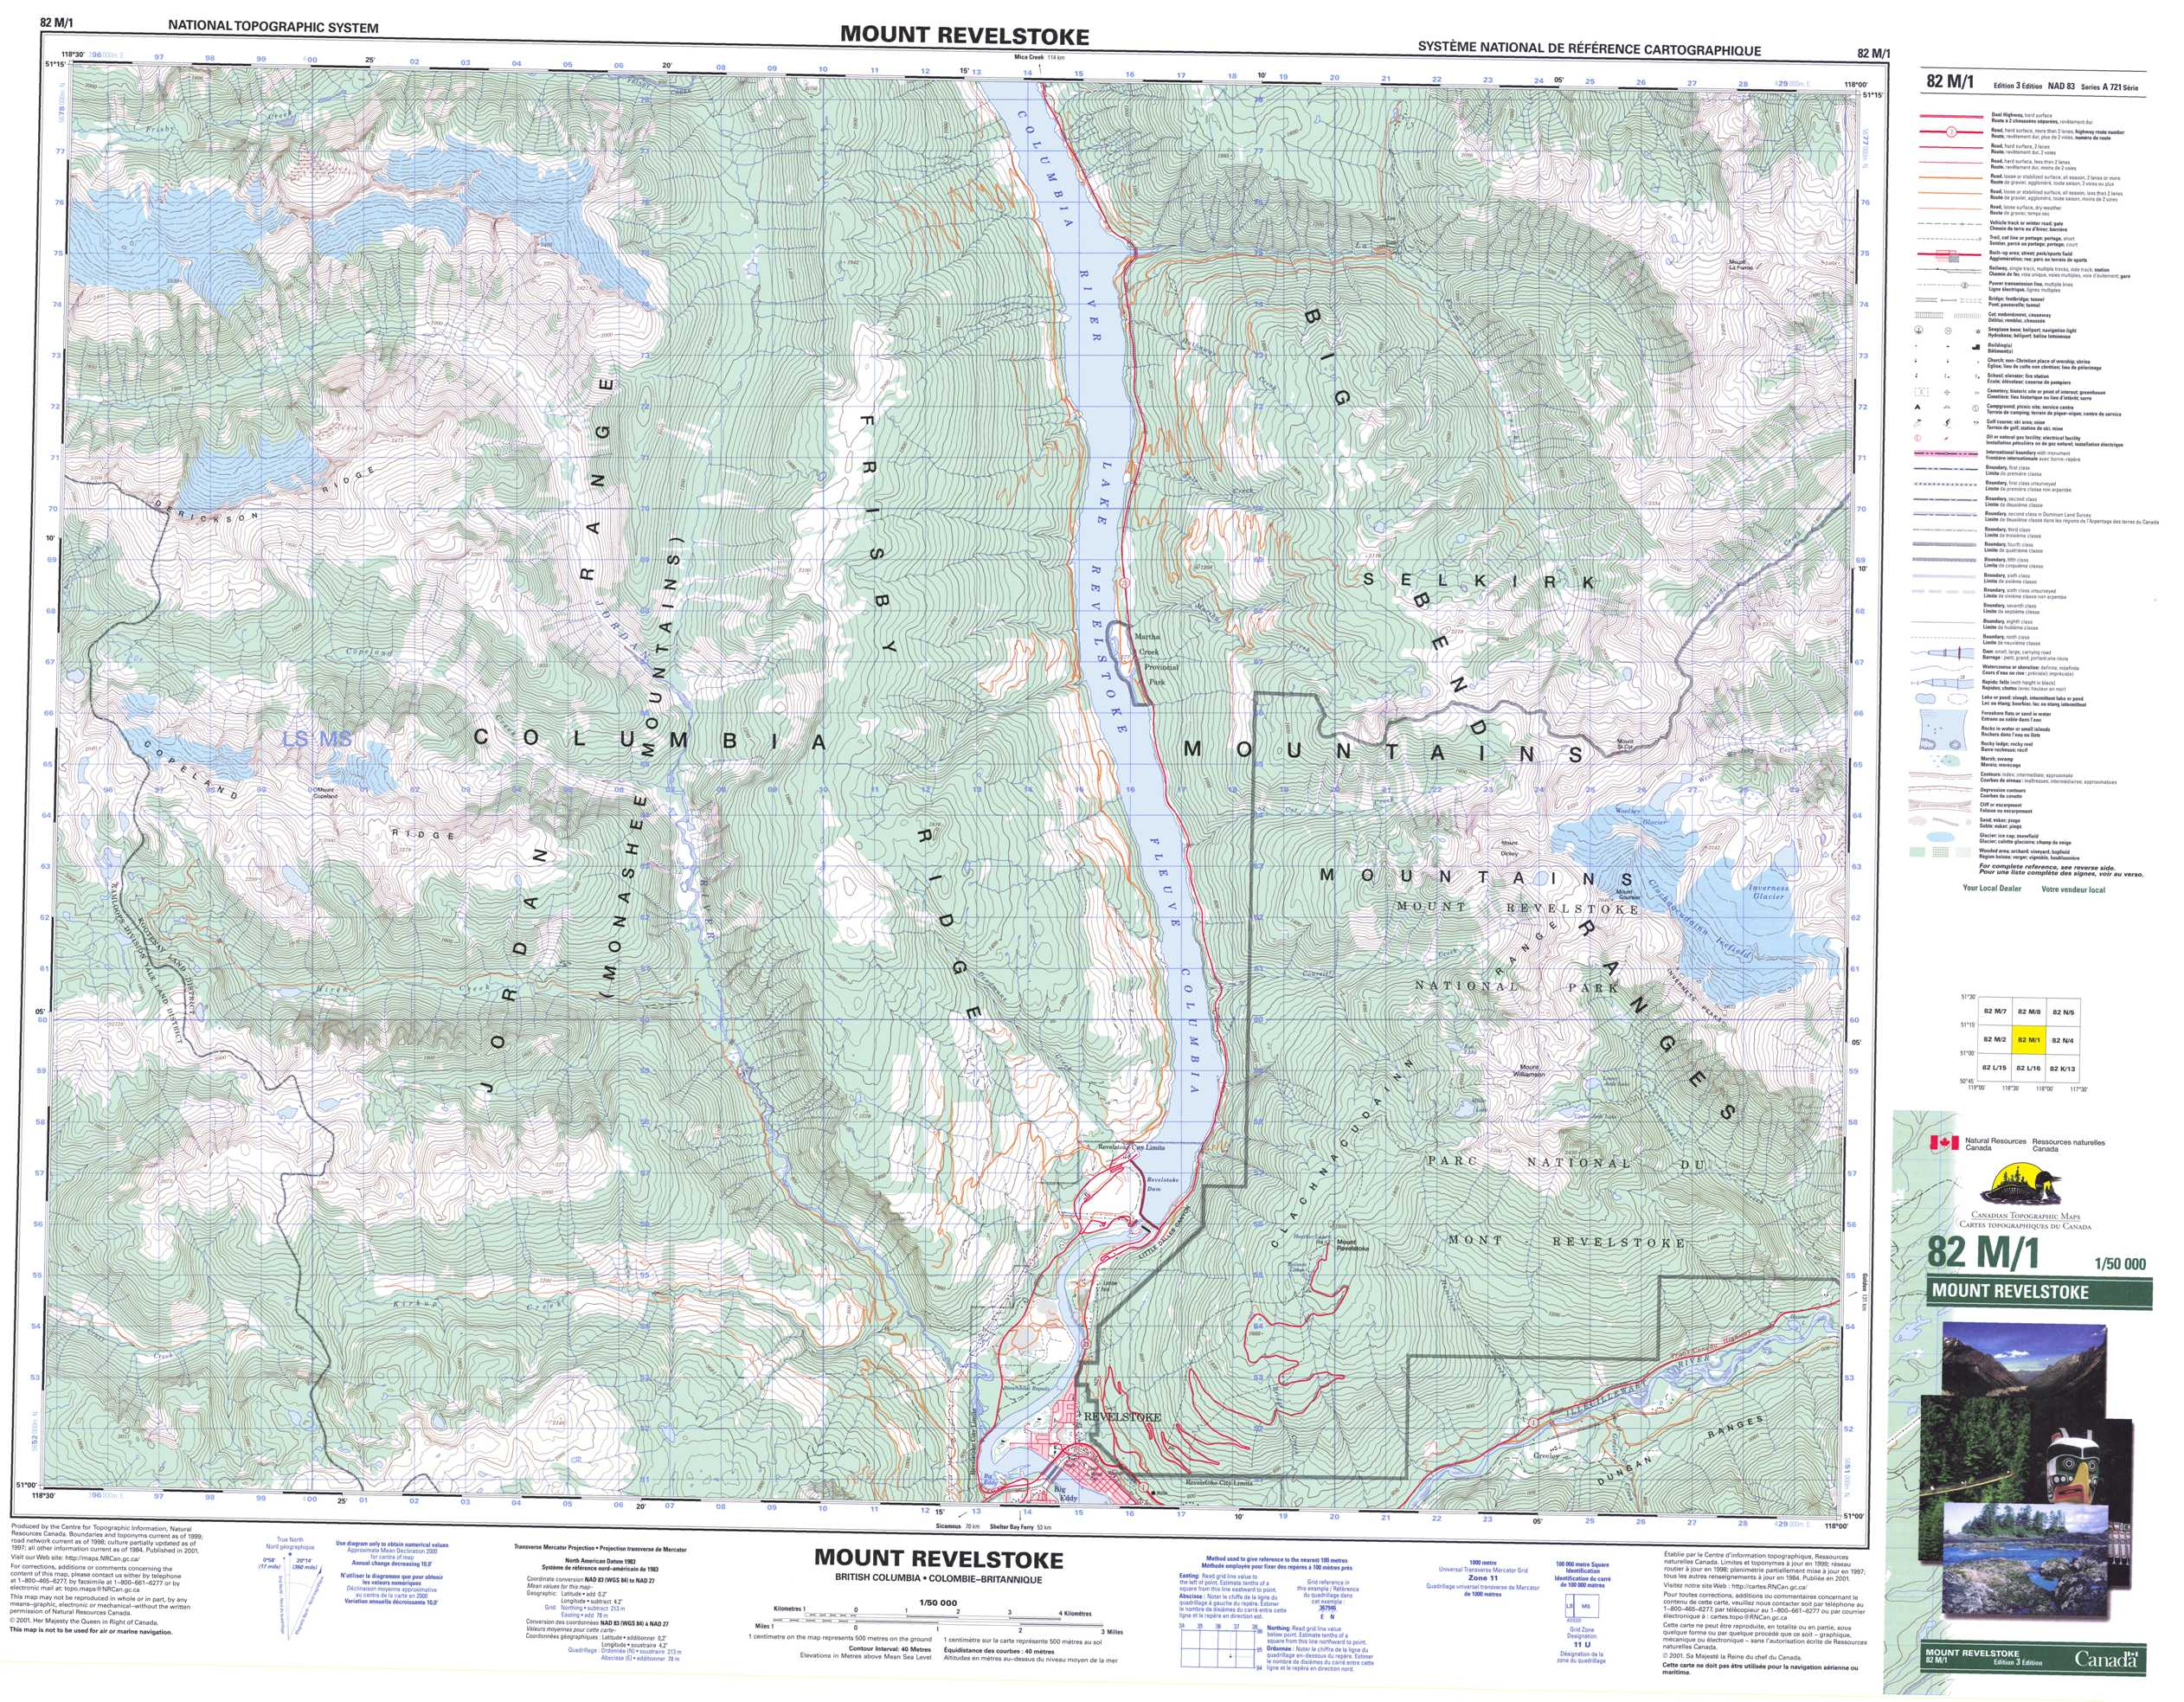 Buy Mount Revelstoke Topographic Map  NTS Sheet 082M01 at 1 50 000 Scale Buy Paper Map 082M01 at 1 50 000 scale